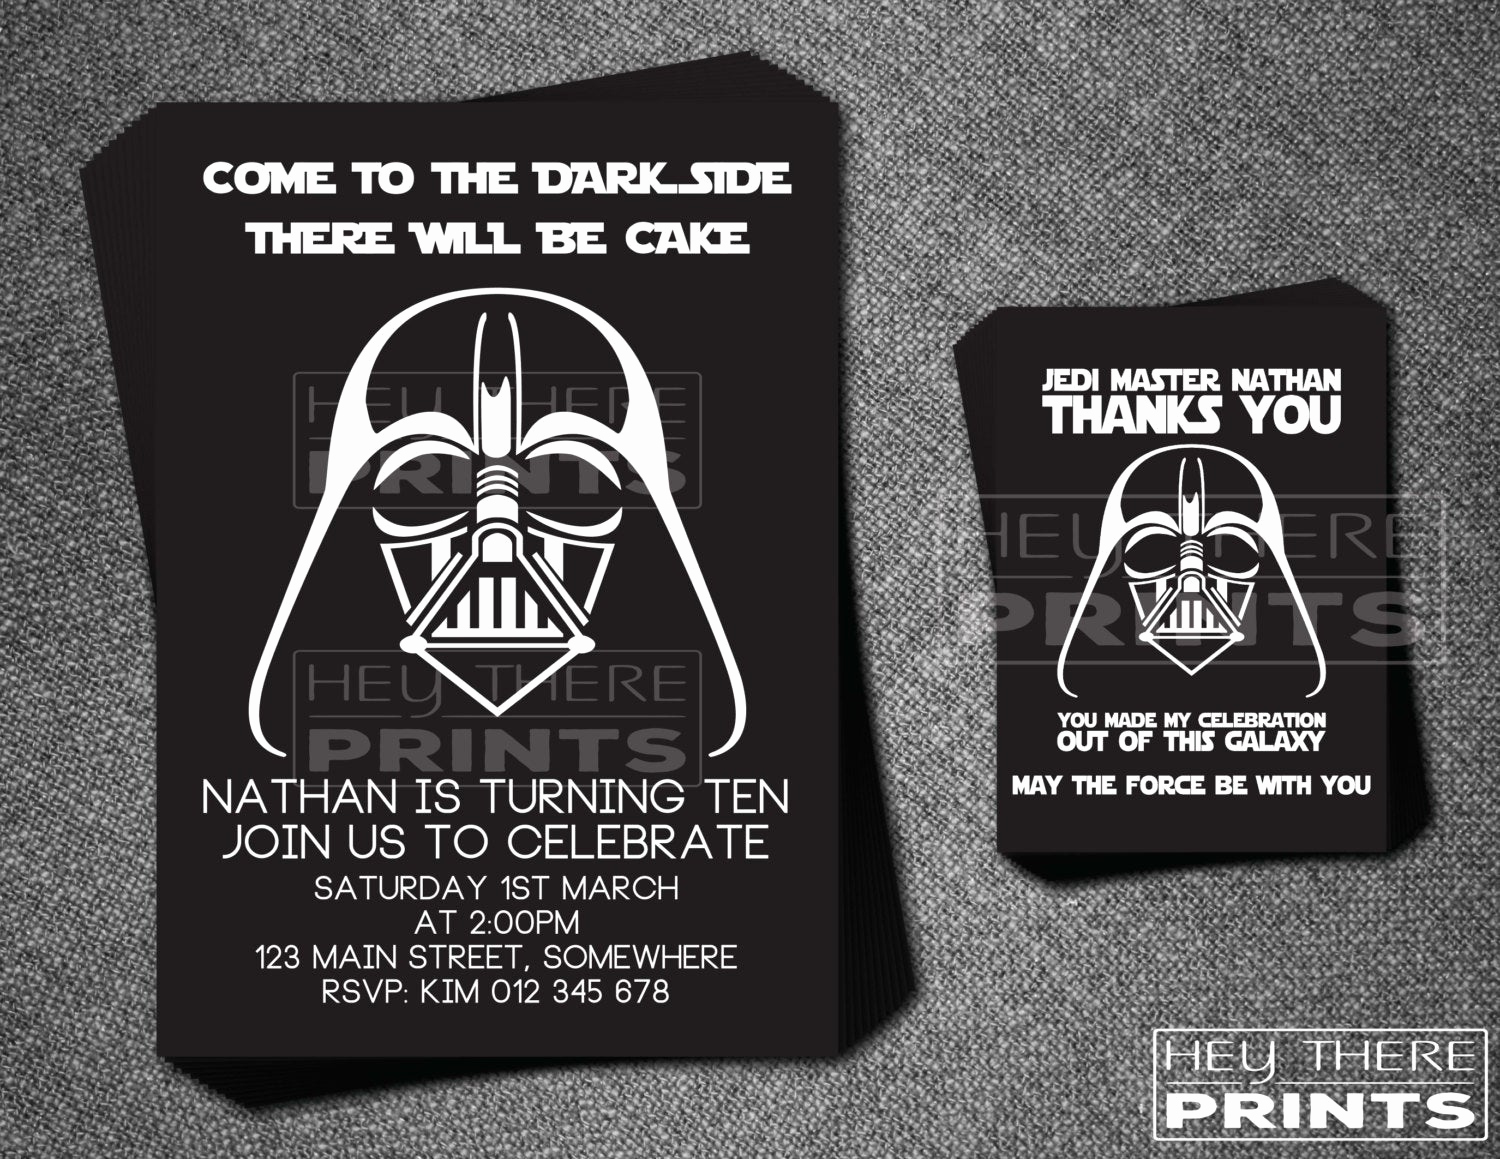 Star Wars Birthday Invitation Lovely Darth Vader Birthday Invitation and Thank You Card Star Wars